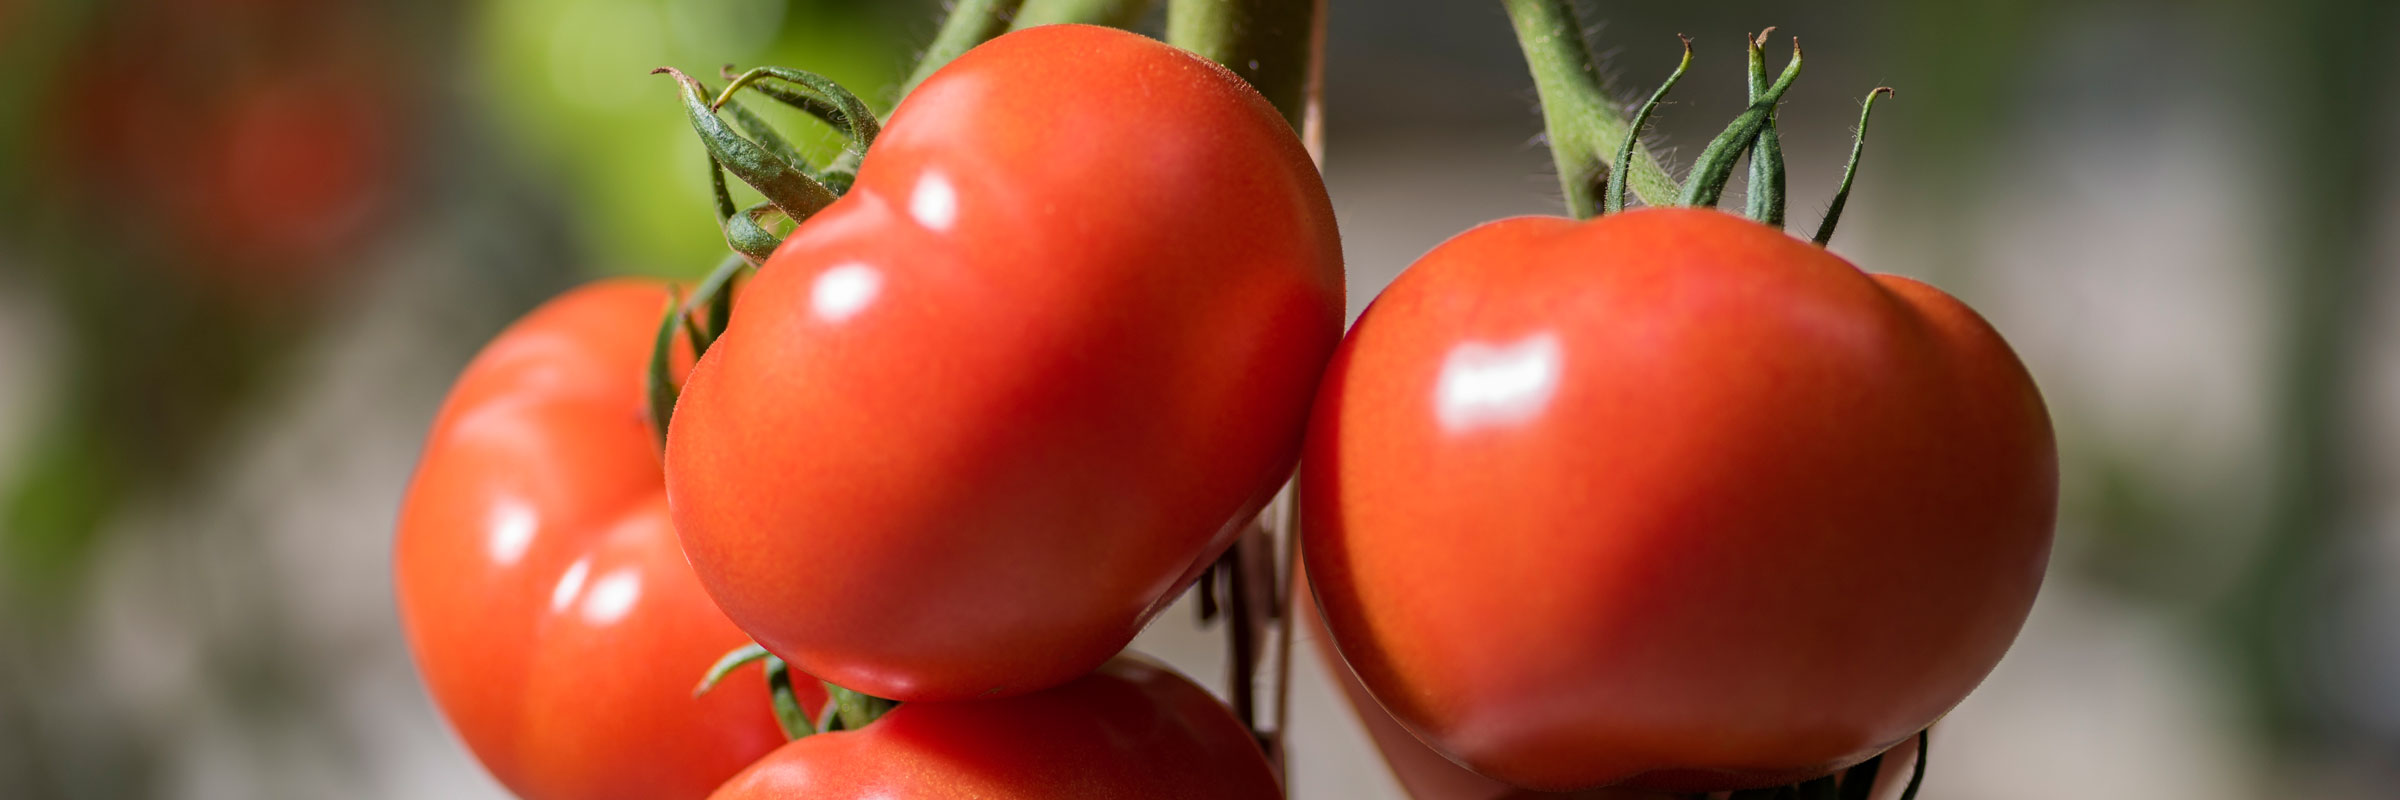 Kamuela's Finest Hydroponically grown tomatoes